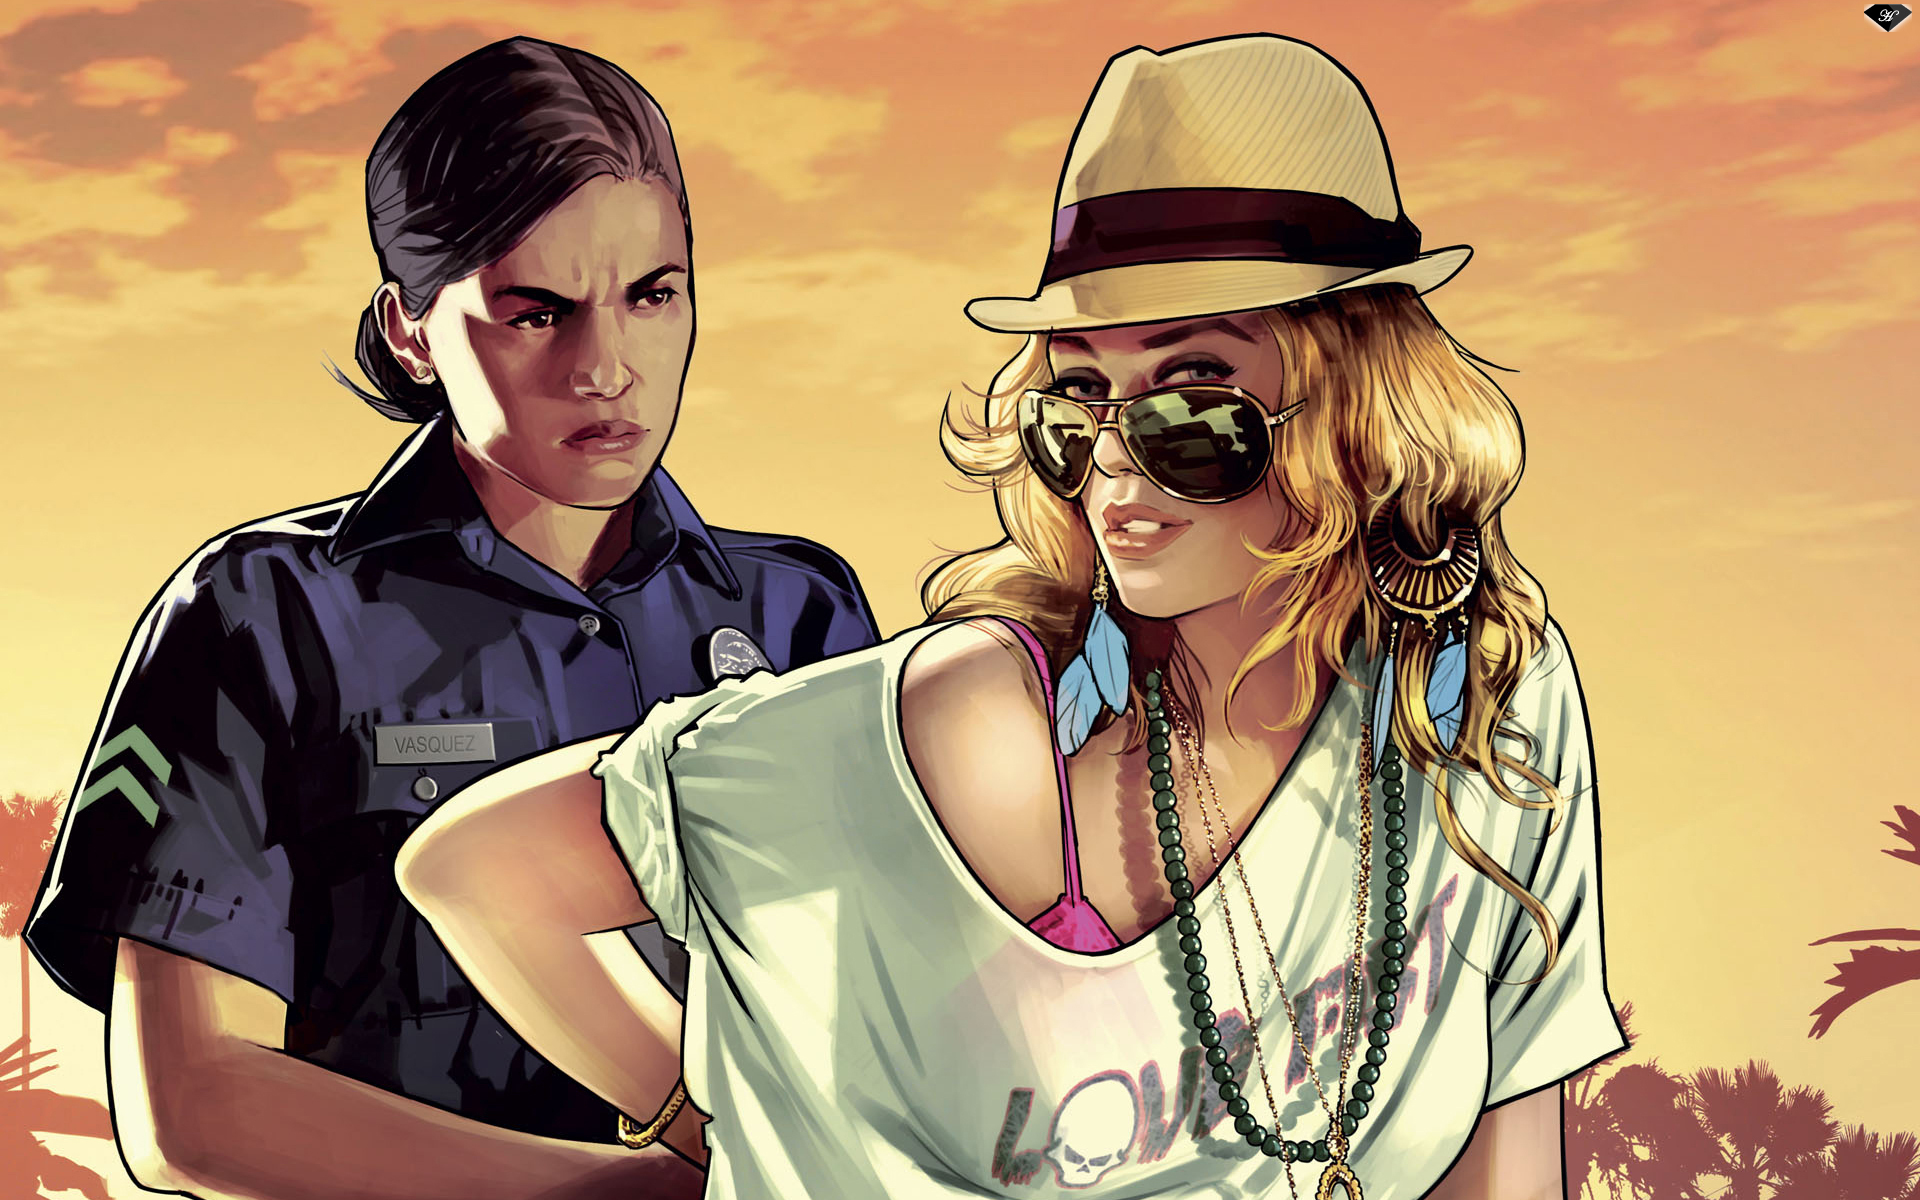 Should Cheating in GTA 5 Be Tolerated?